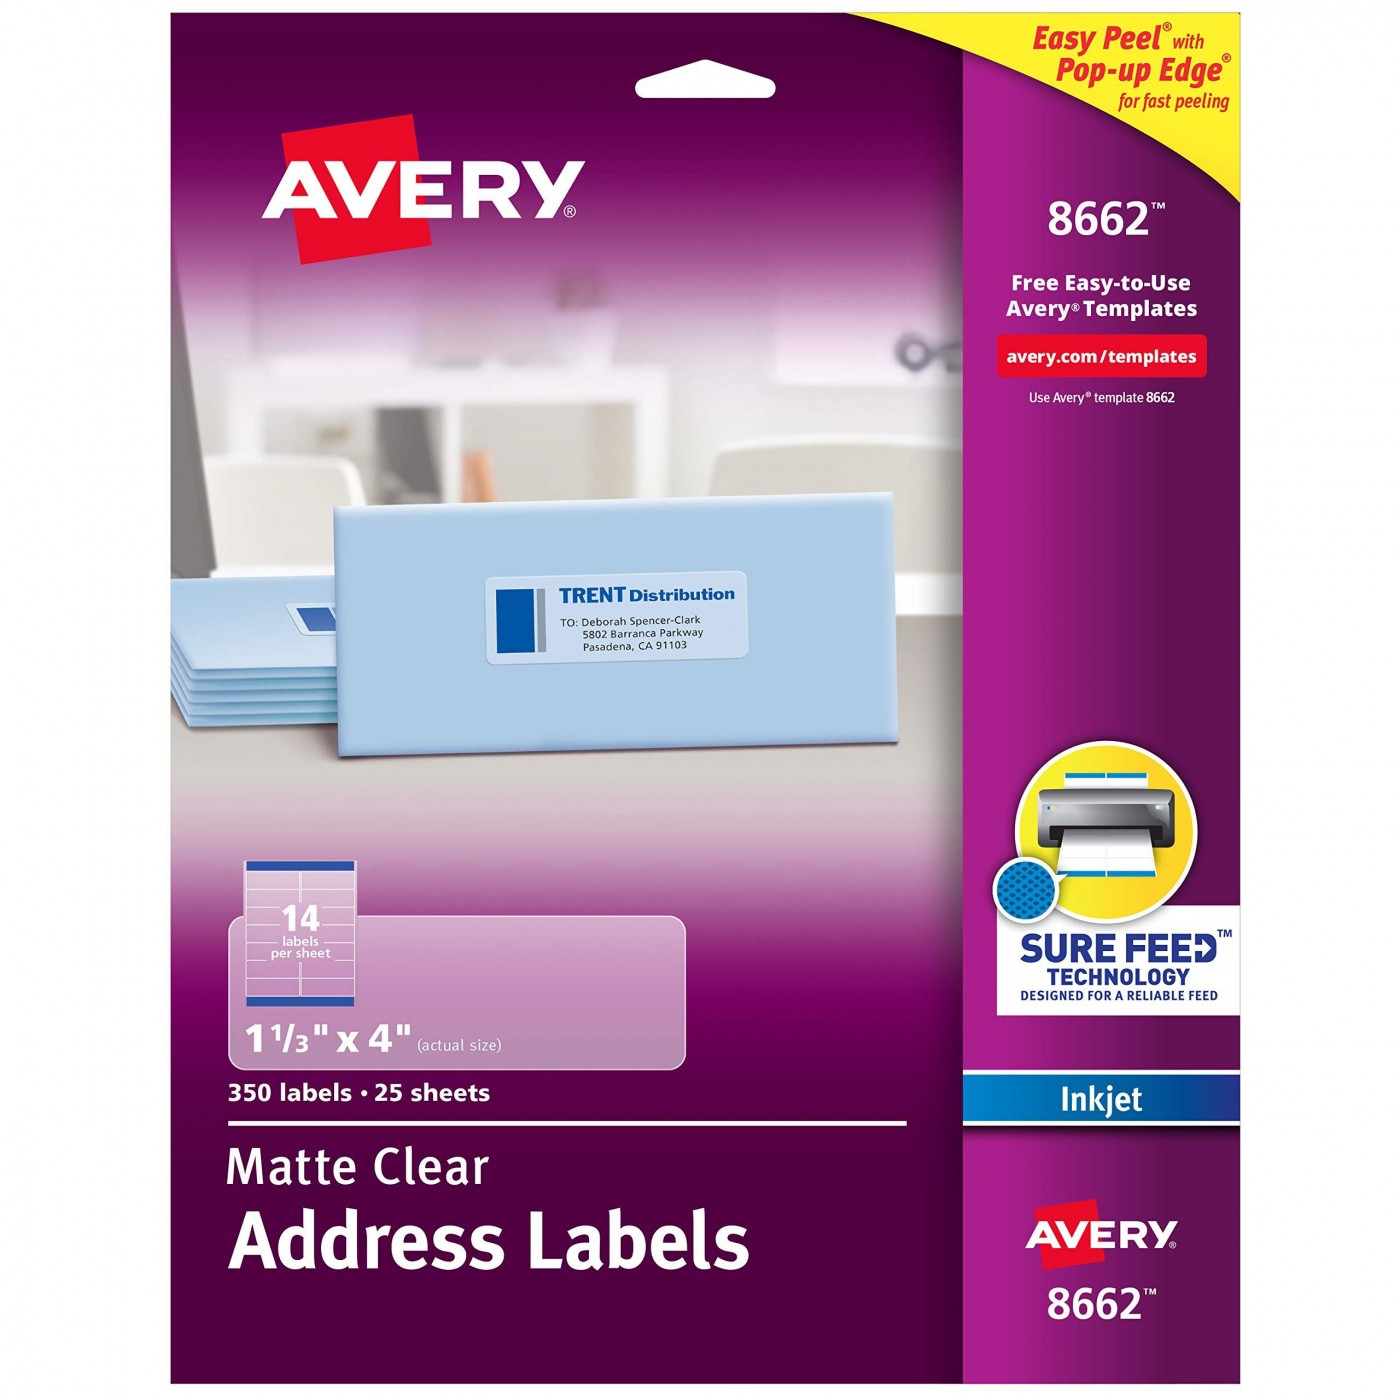 000 Wonderful Free Avery Addres Label Template For Mac High Def  51601400